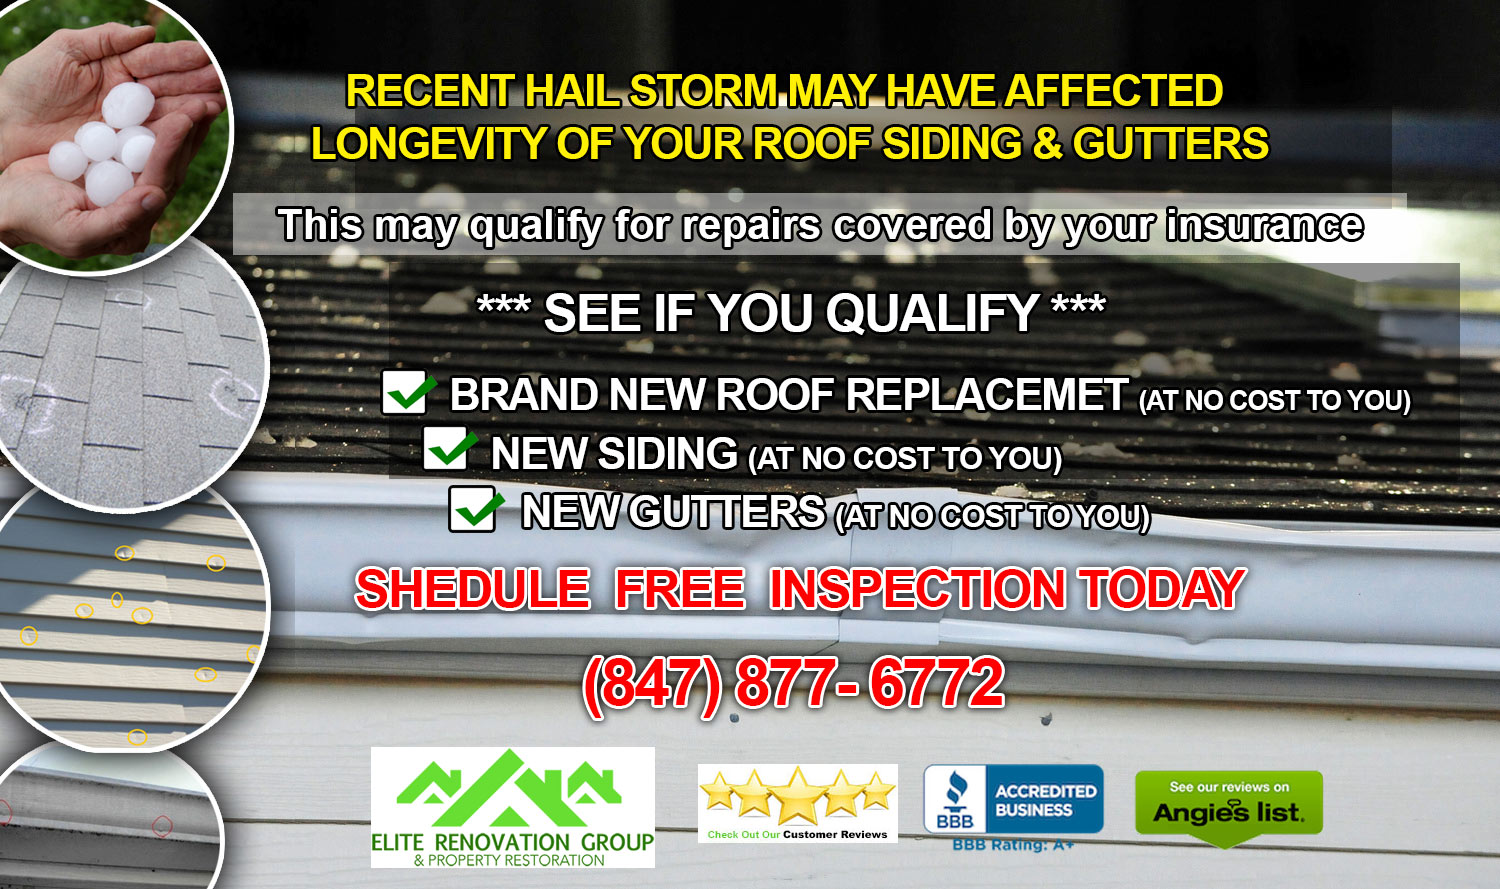 ⛈ CHICAGO PUBLIC ADJUSTERS: ⛈ Severe storms, hail & wind restoration - You may qualify for repairs 💯% Covered by your insurance - (847) 380-6911